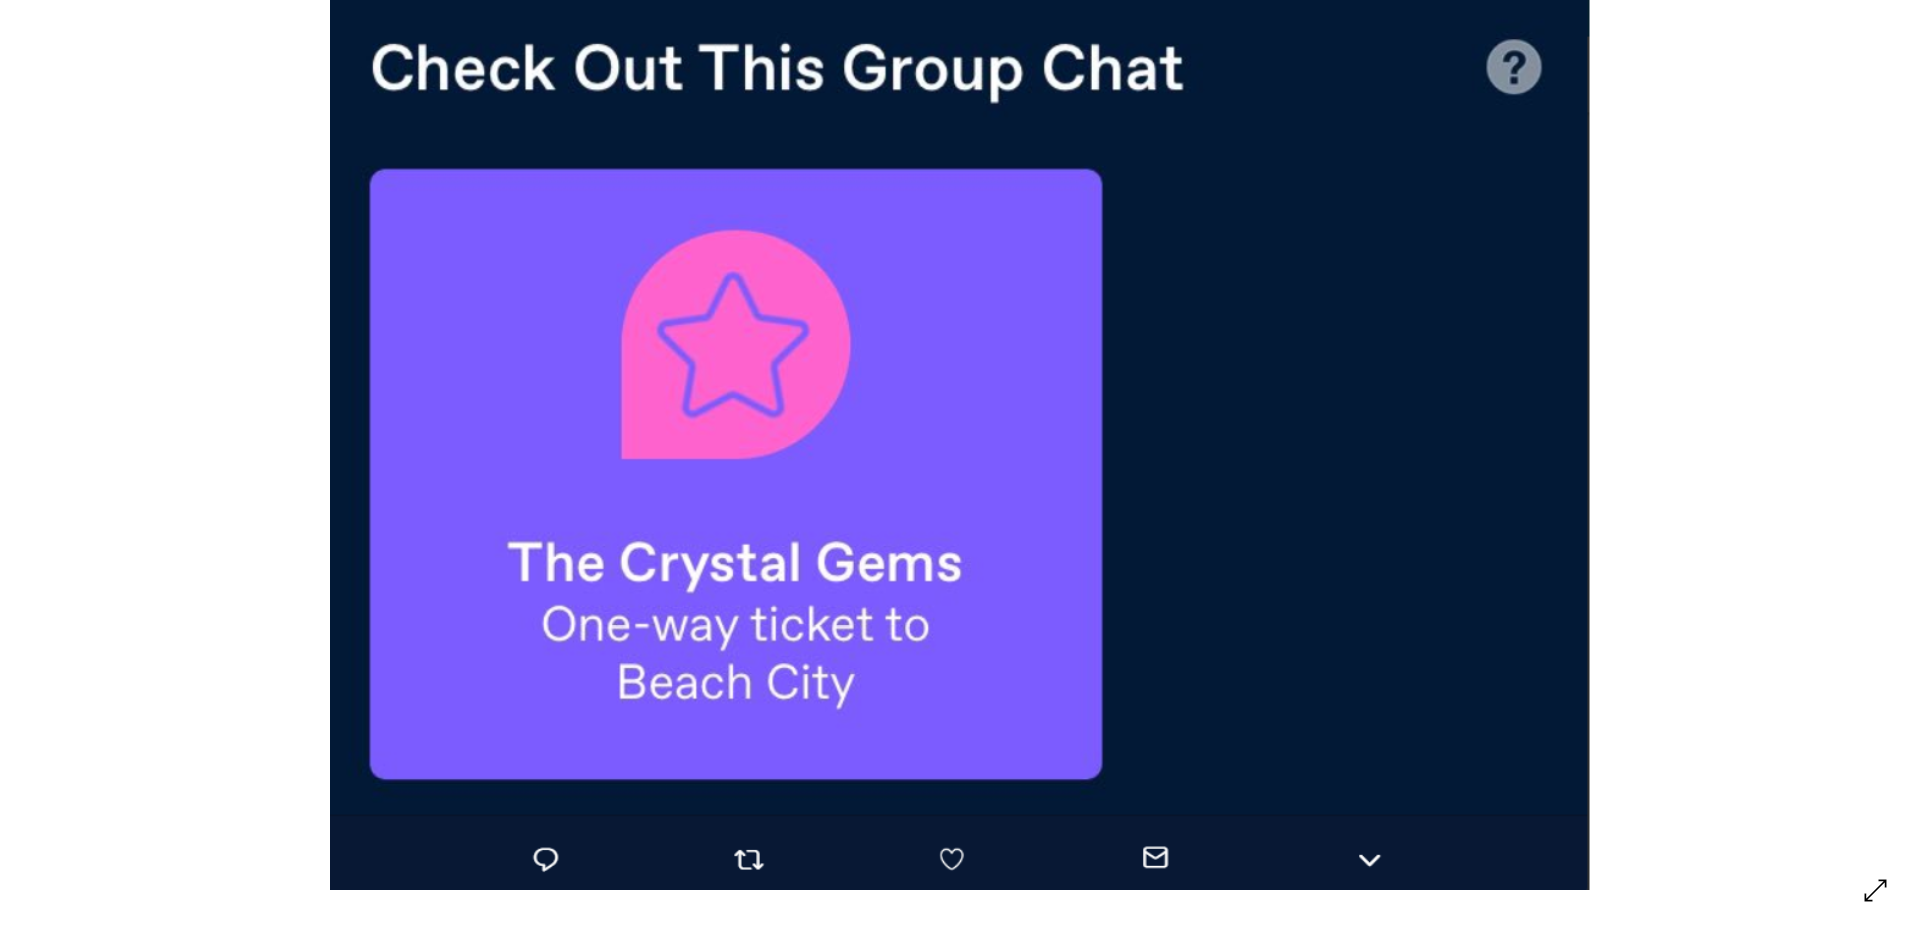 [It's official!] BREAKING: Tumblr testing new group chat feature, but 100 text blocks per post limit isn't new